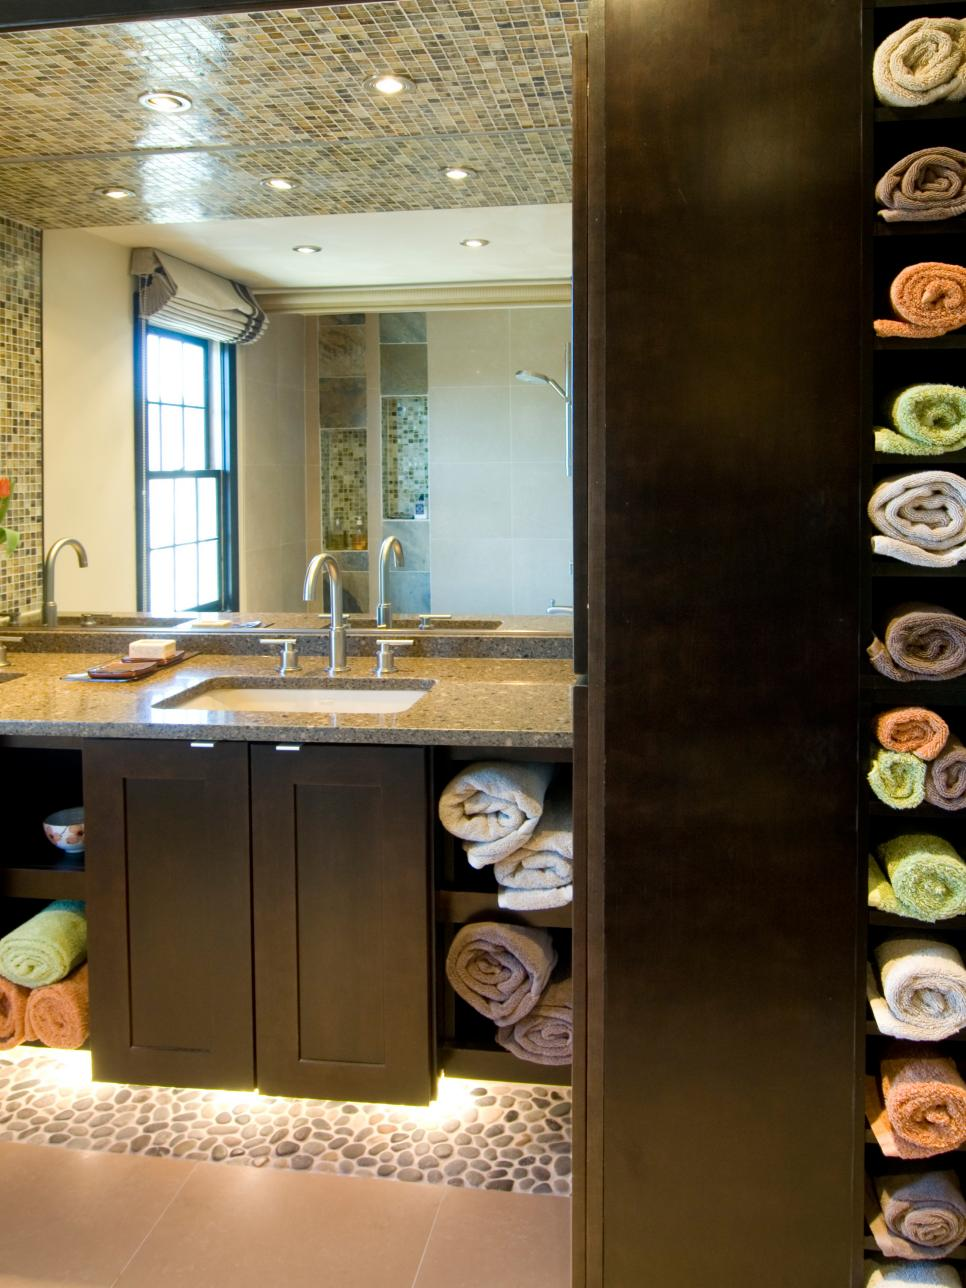 12 clever bathroom storage ideas | hgtv